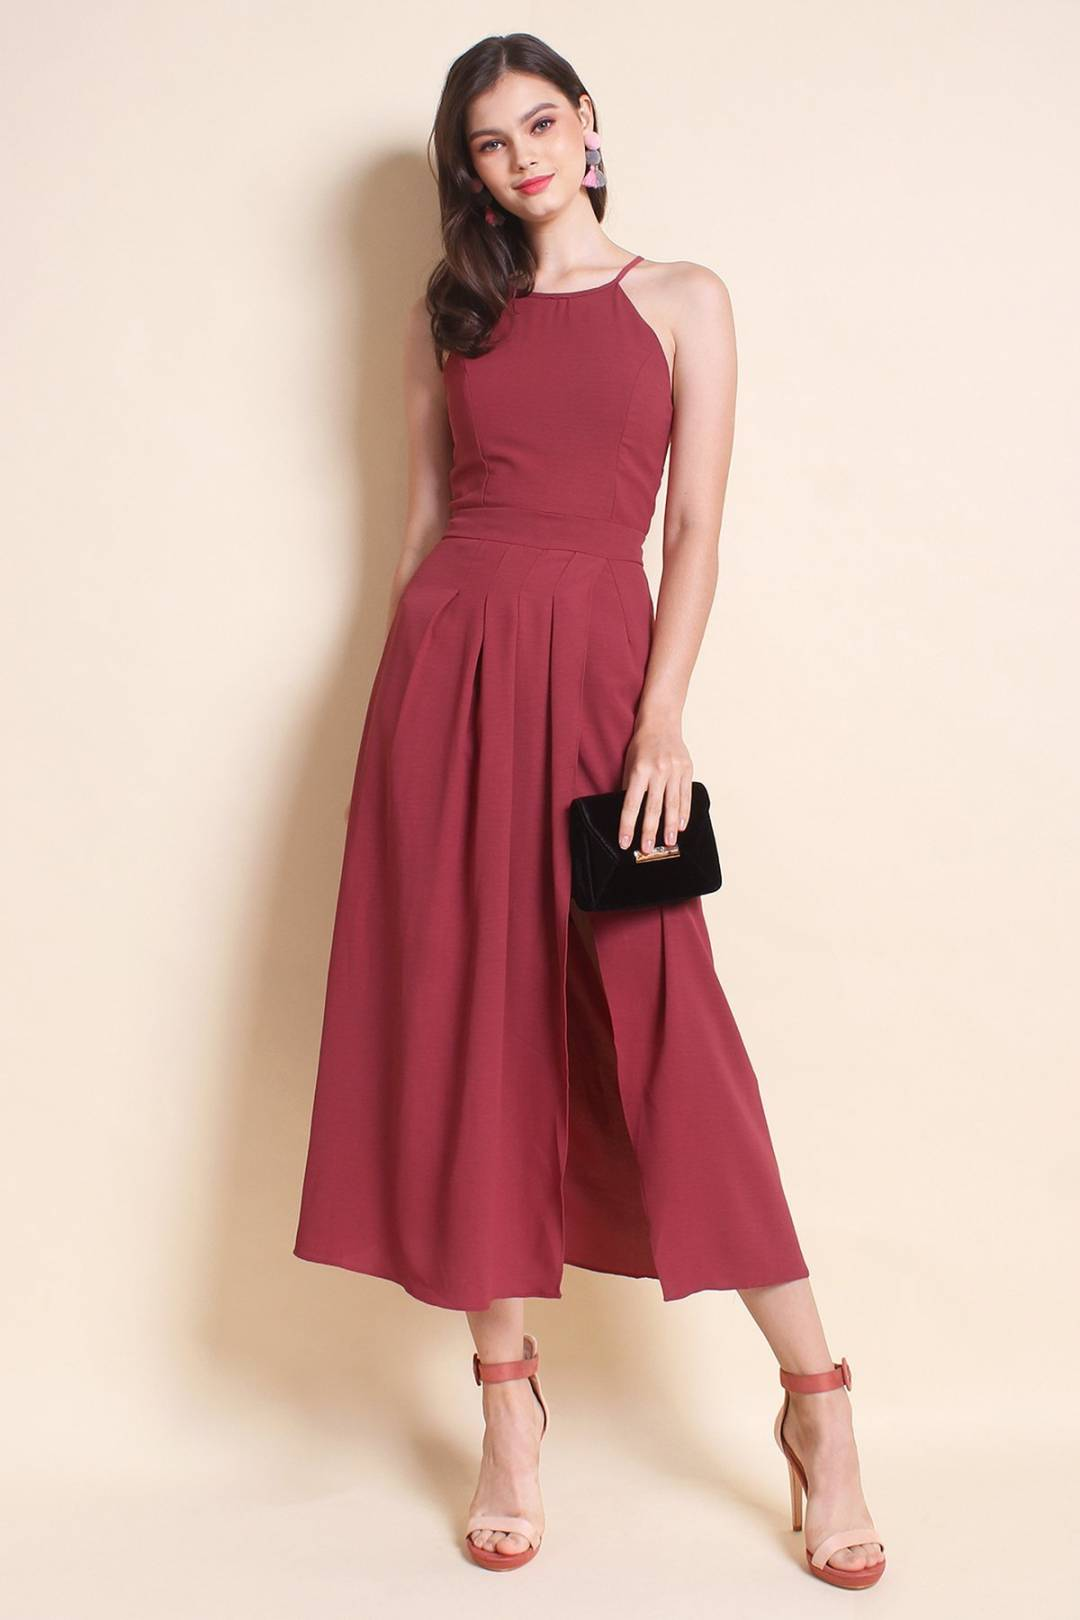 MADEBYNM TERRA PLEAT OVERLAPPING MAXI DRESS IN SANGRIA ROSE [XS/S/M/L]